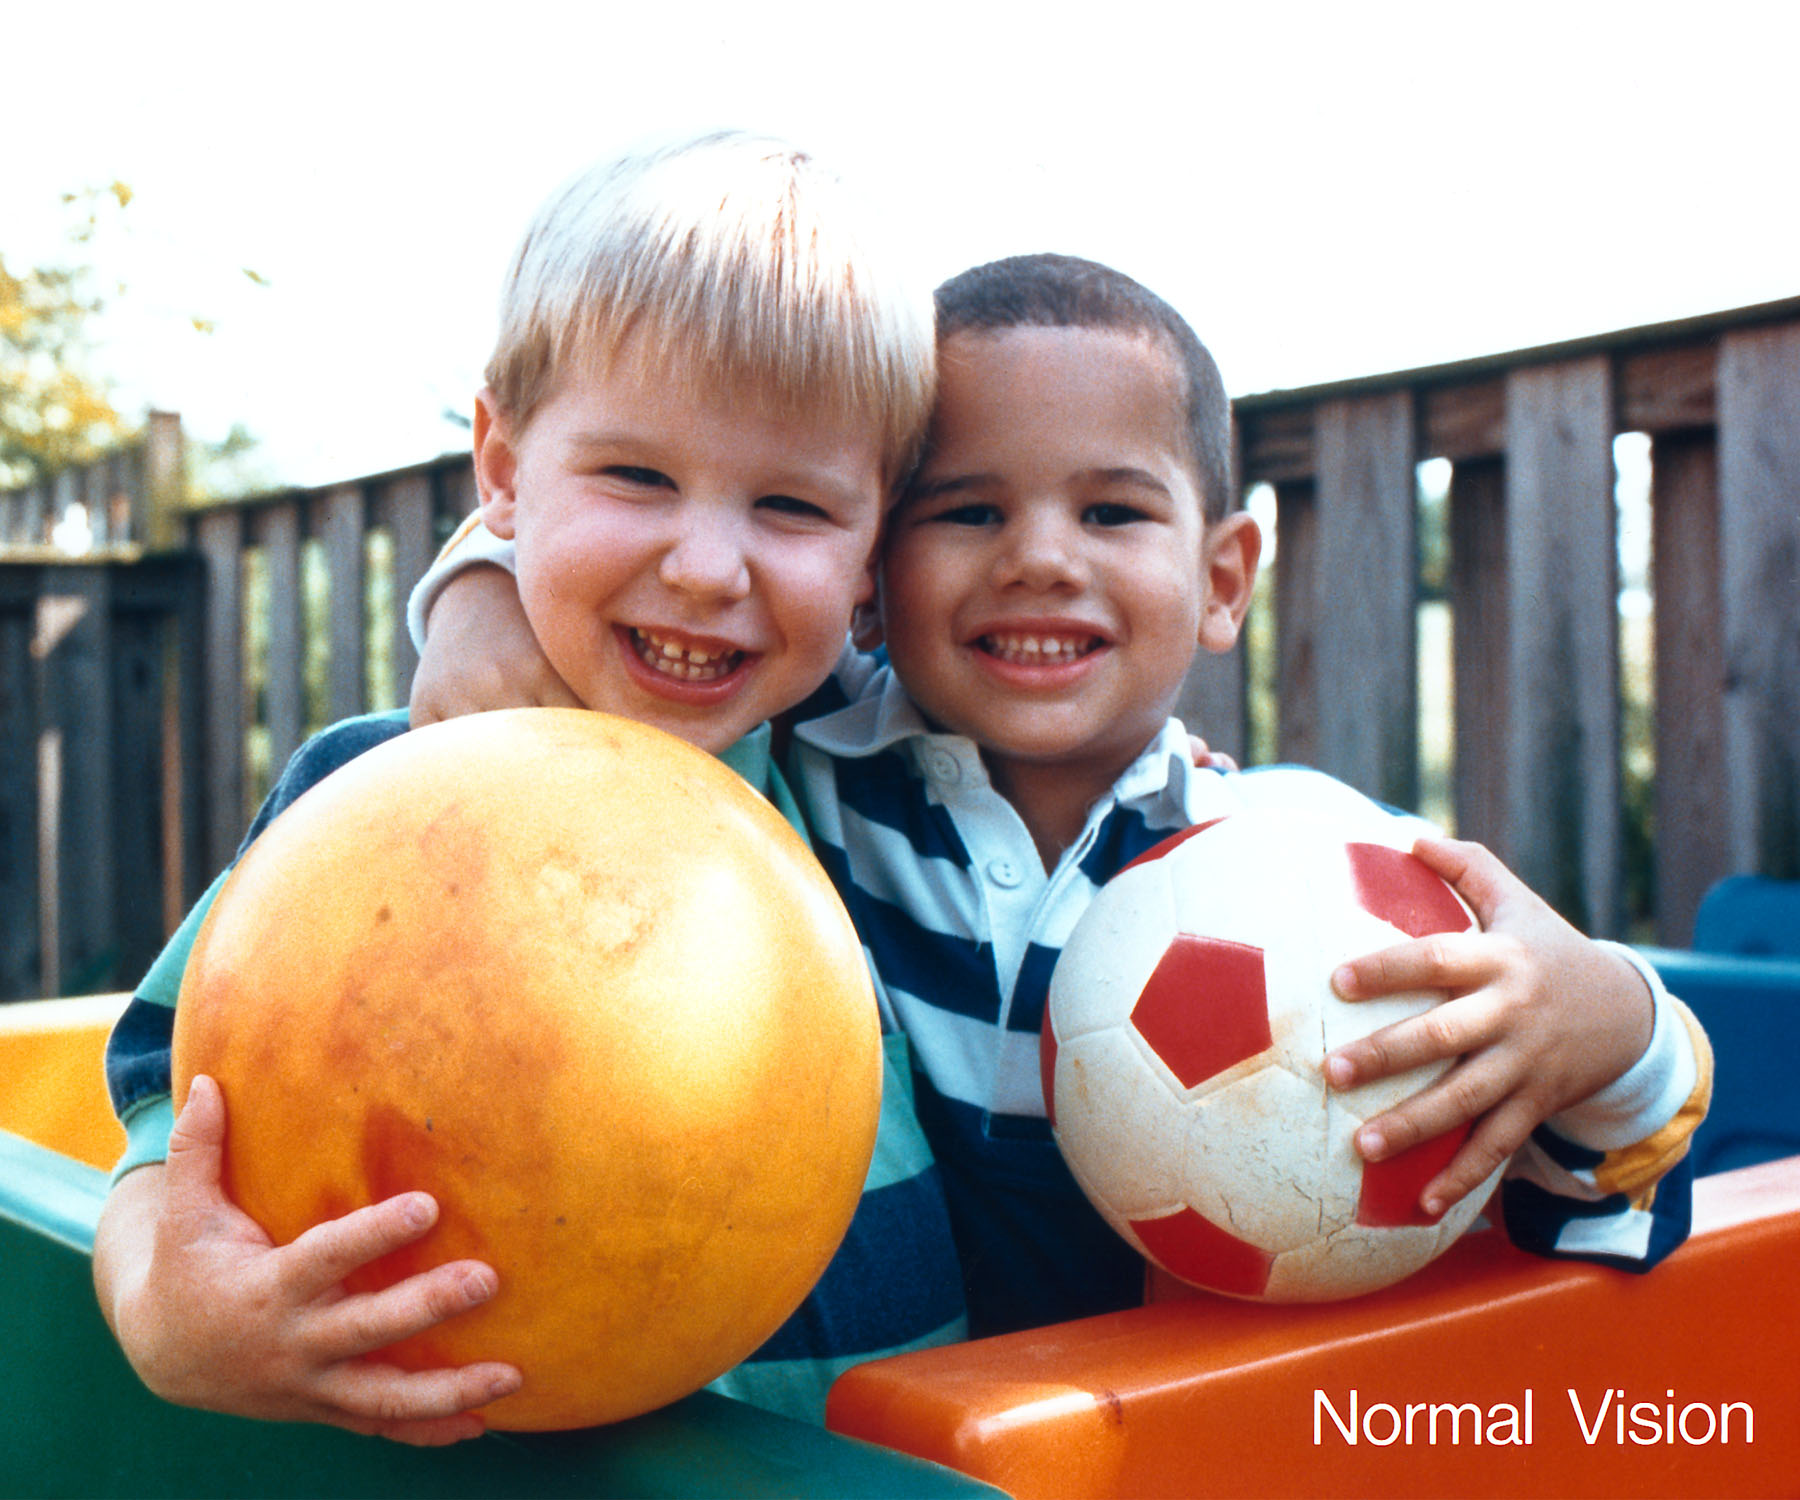 File:human eyesight two children and ball normal vision color hi-res